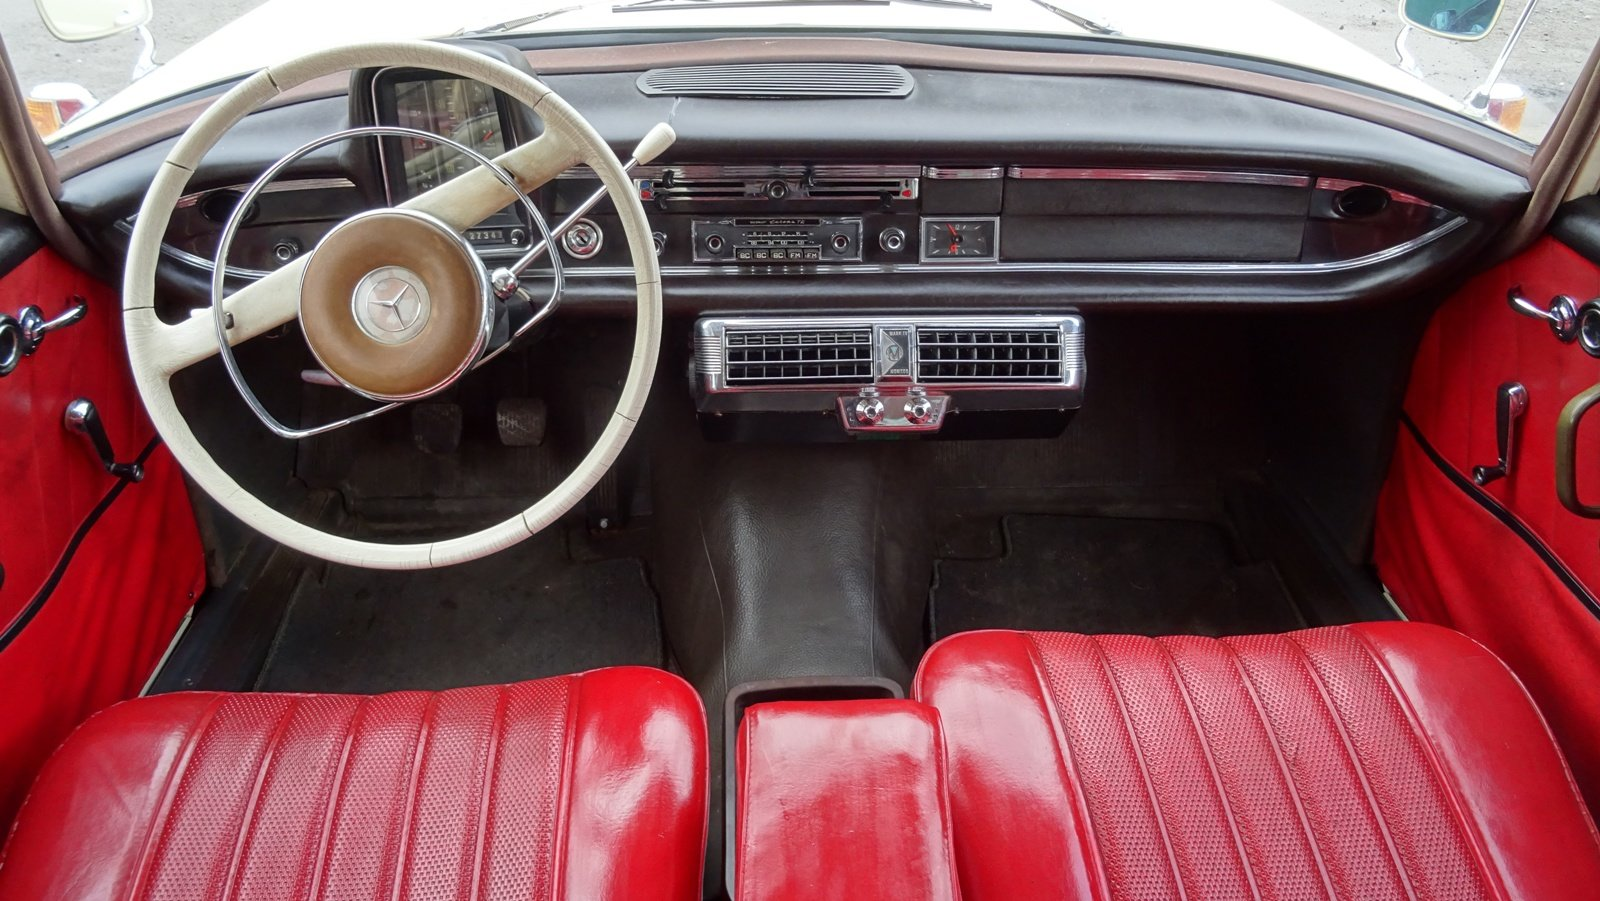 1965 MERCEDES 190 FINTAIL SALOON SOLID BODY BEAUTIFUL INTERIOR SOLD (picture 5 of 6)